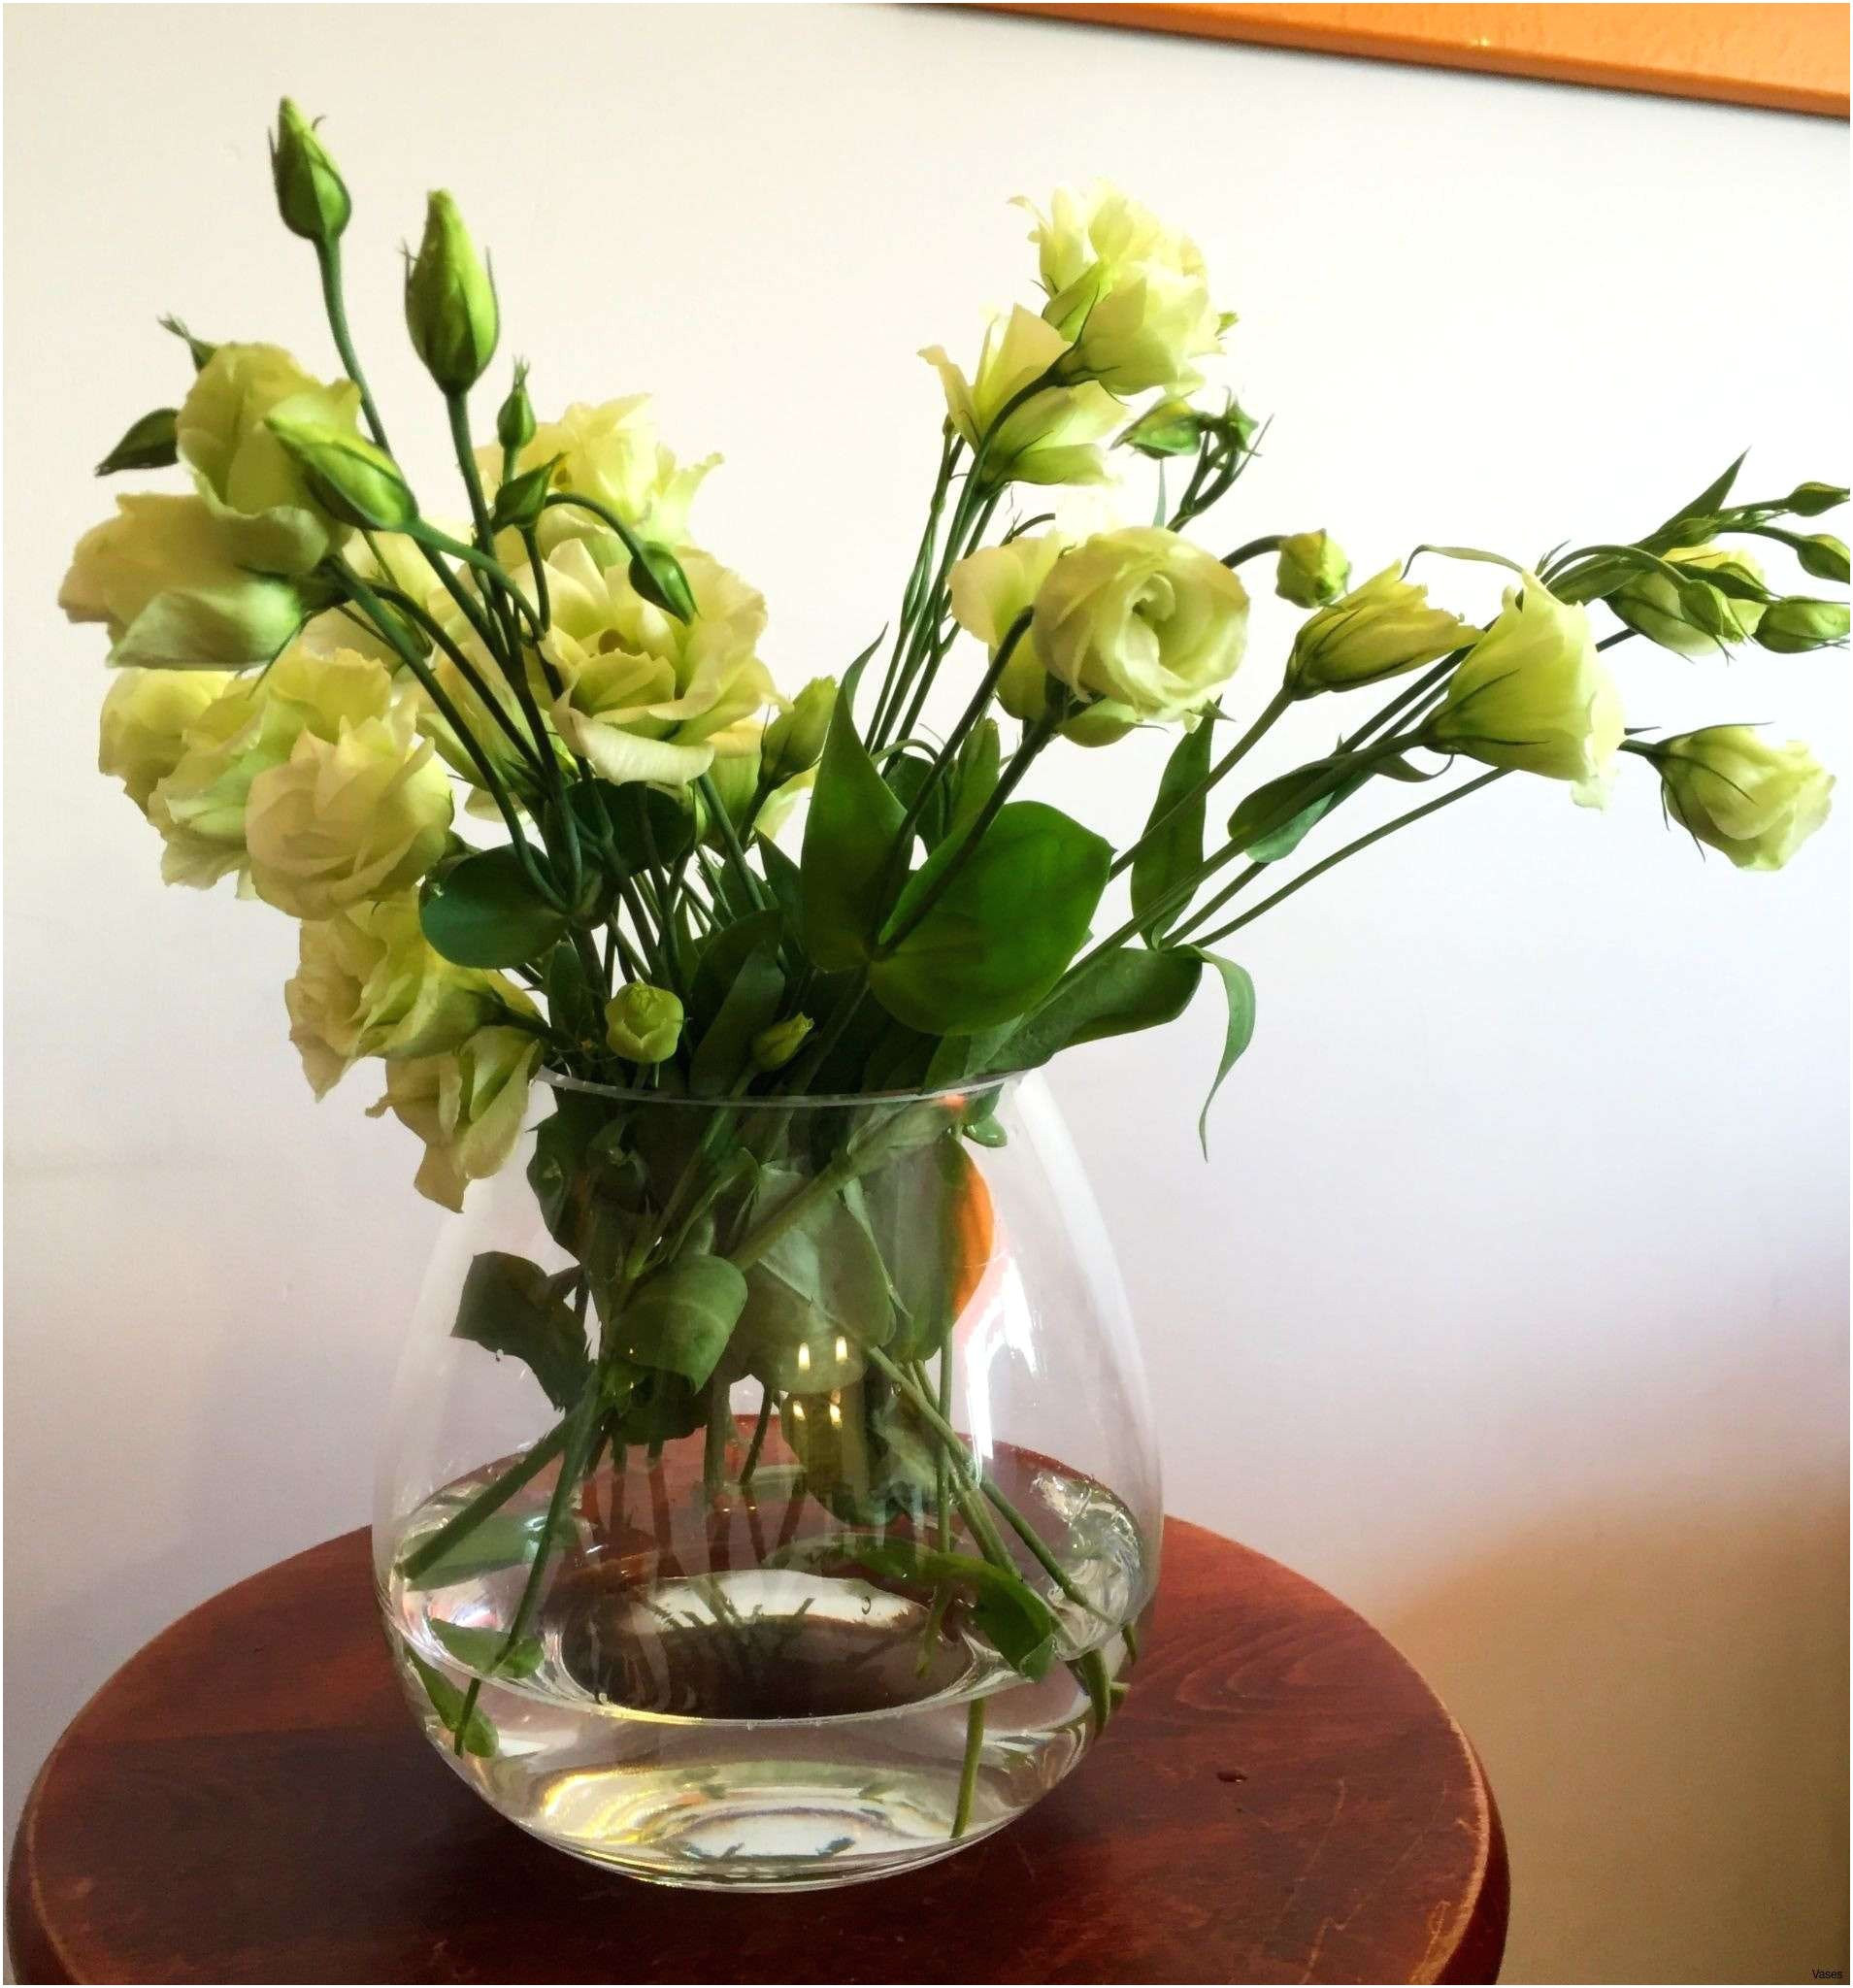 Tall Green Floor Vases Of Tall Green Vase Photos Tiger Height Awful Flower Vase Table 04h In Tall Green Vase Photos Tiger Height Awful Flower Vase Table 04h Vases Tablei 0d Clipart